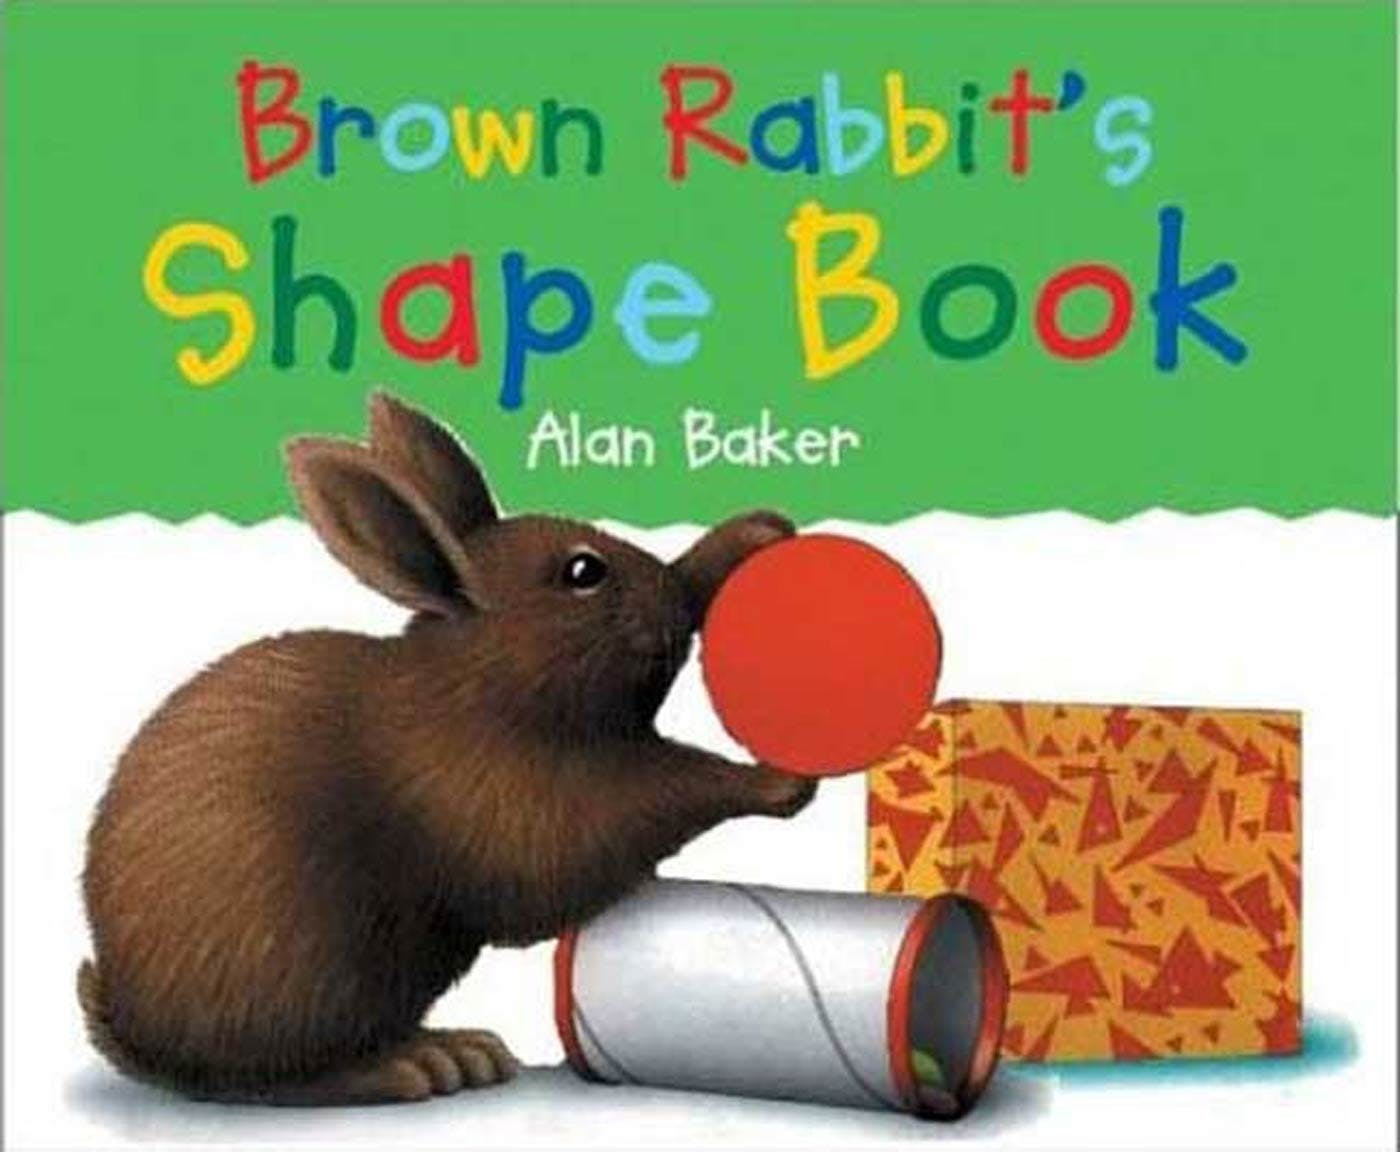 Image of Brown Rabbit's Shapes